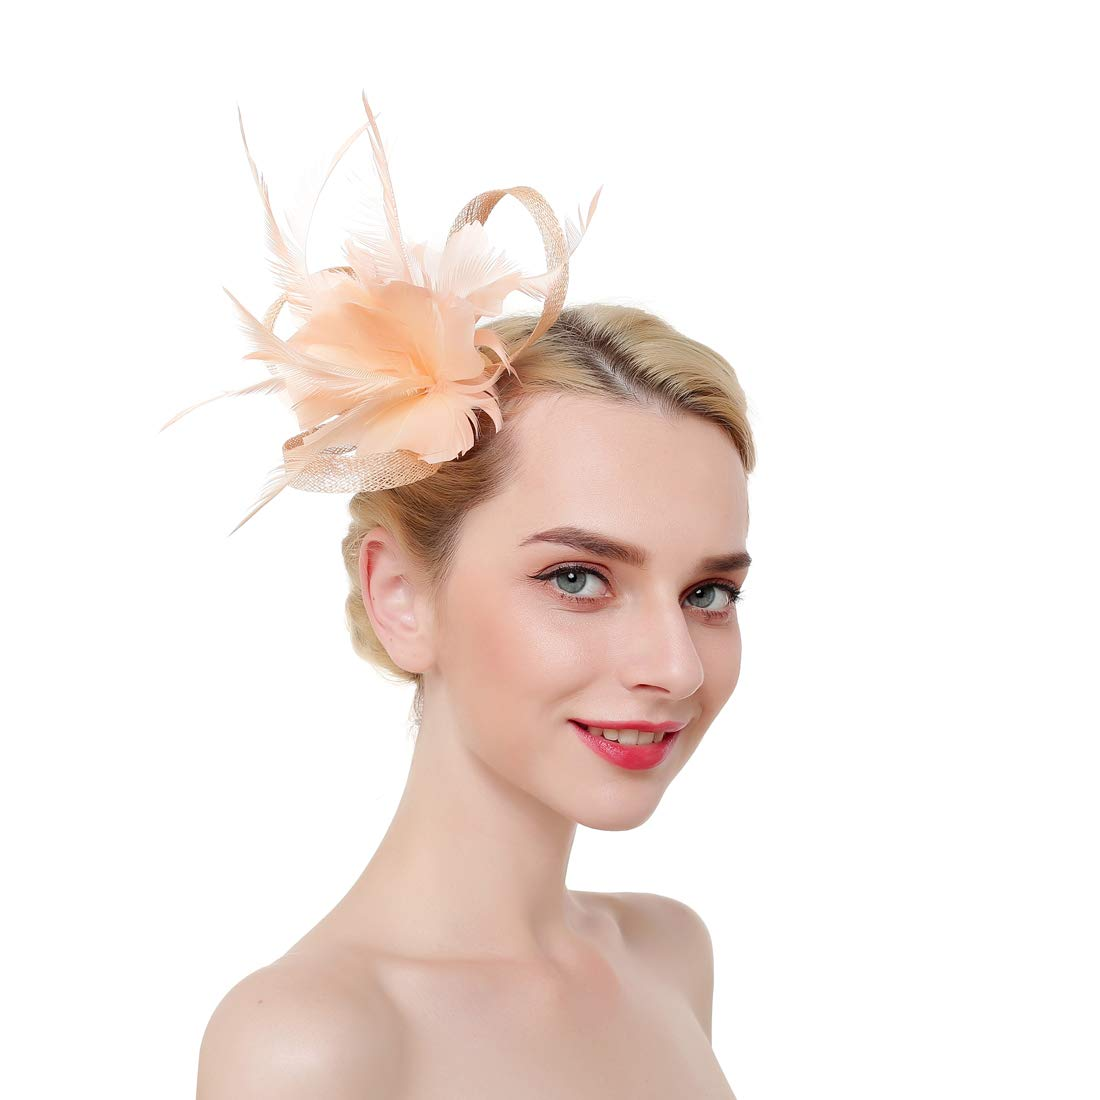 MisShe Black Fascinator Hats for Women Feather Cocktail Party Hats Bridal Kentucky Derby Headband